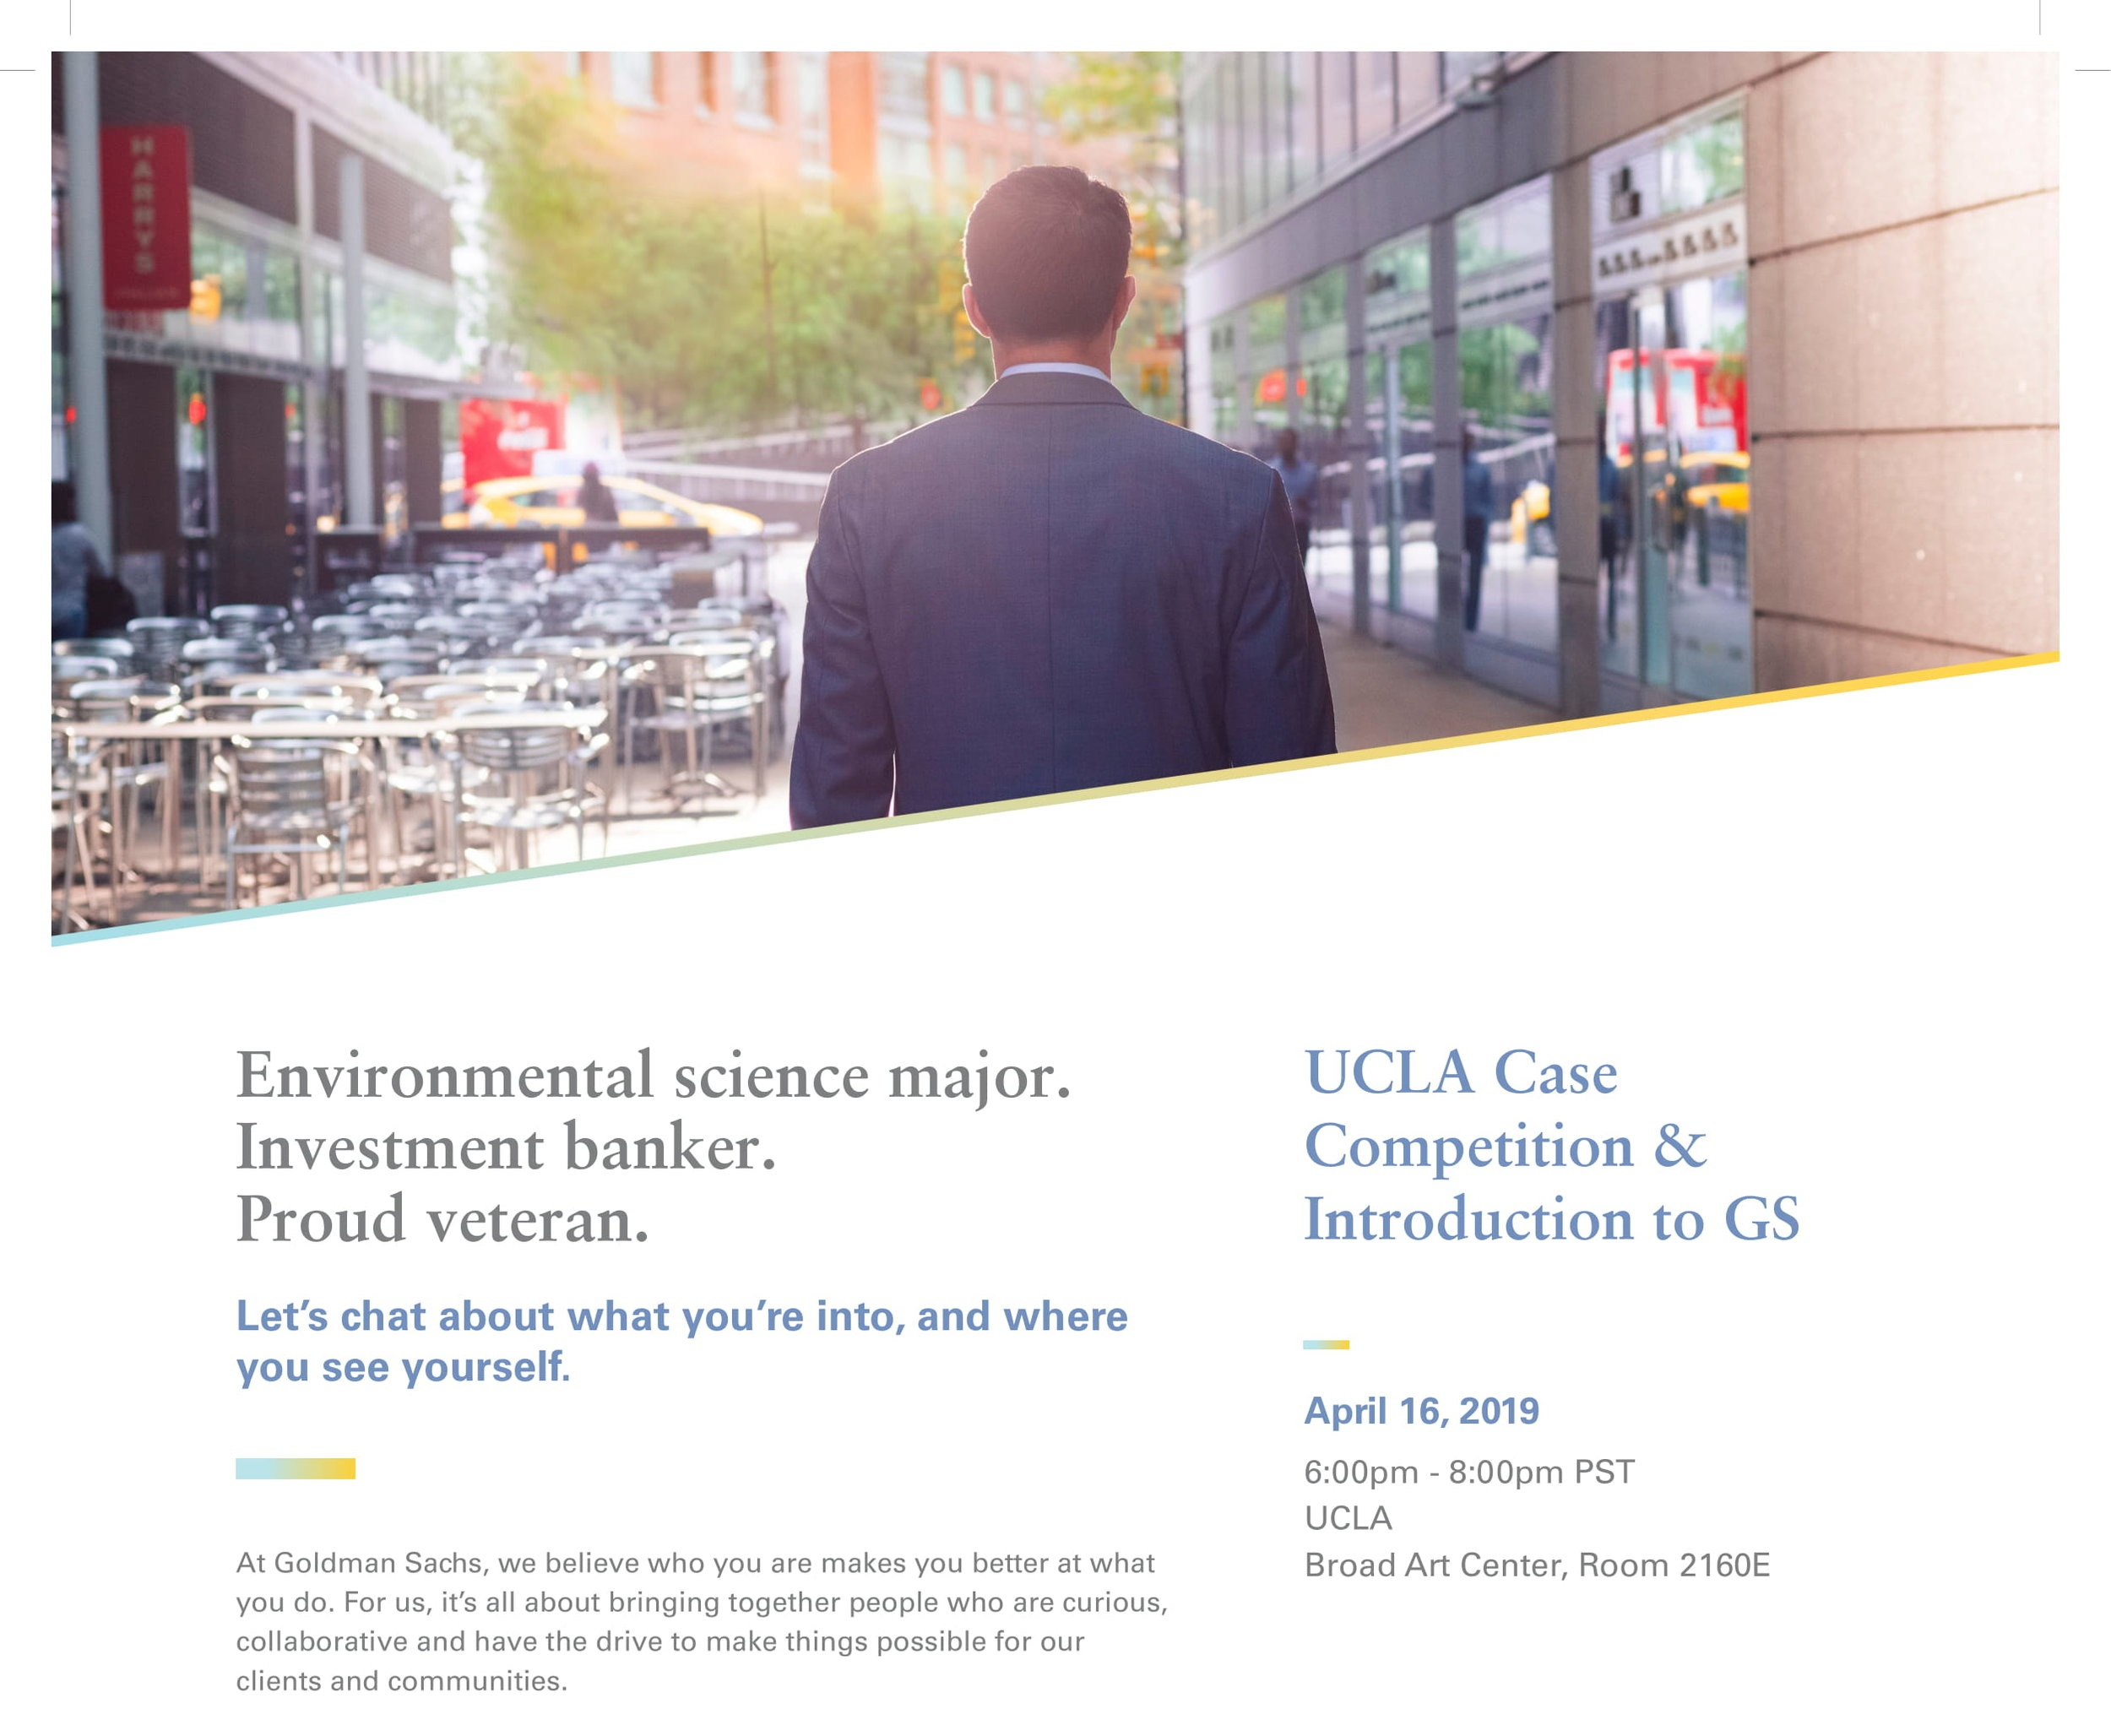 UCLA Case Competition & Intro to GS-1.jpg